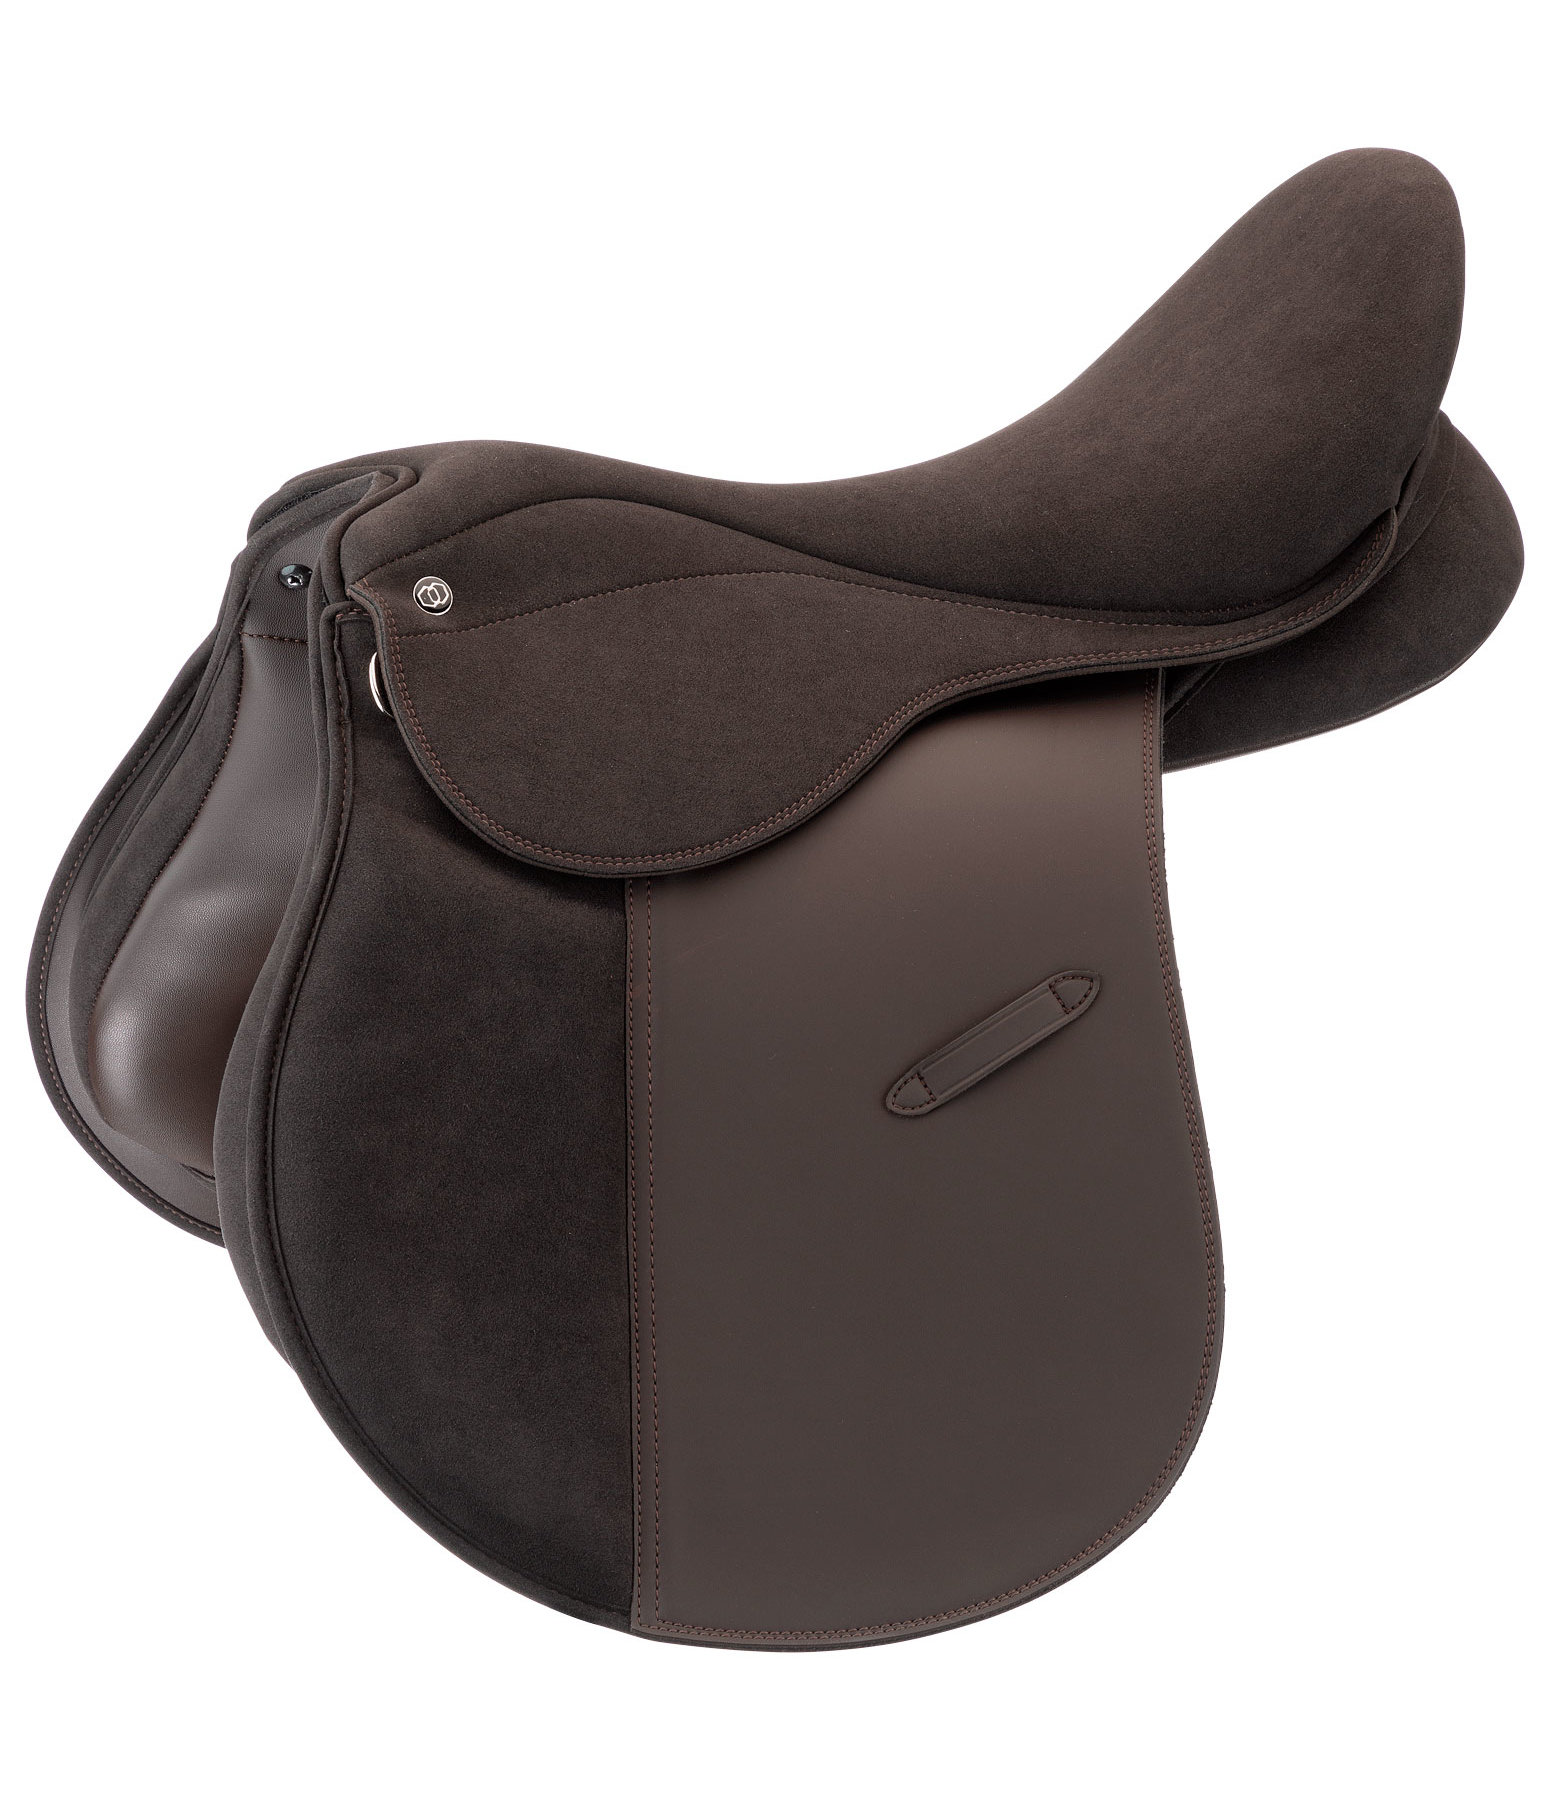 SYLKA General Purpose Saddle